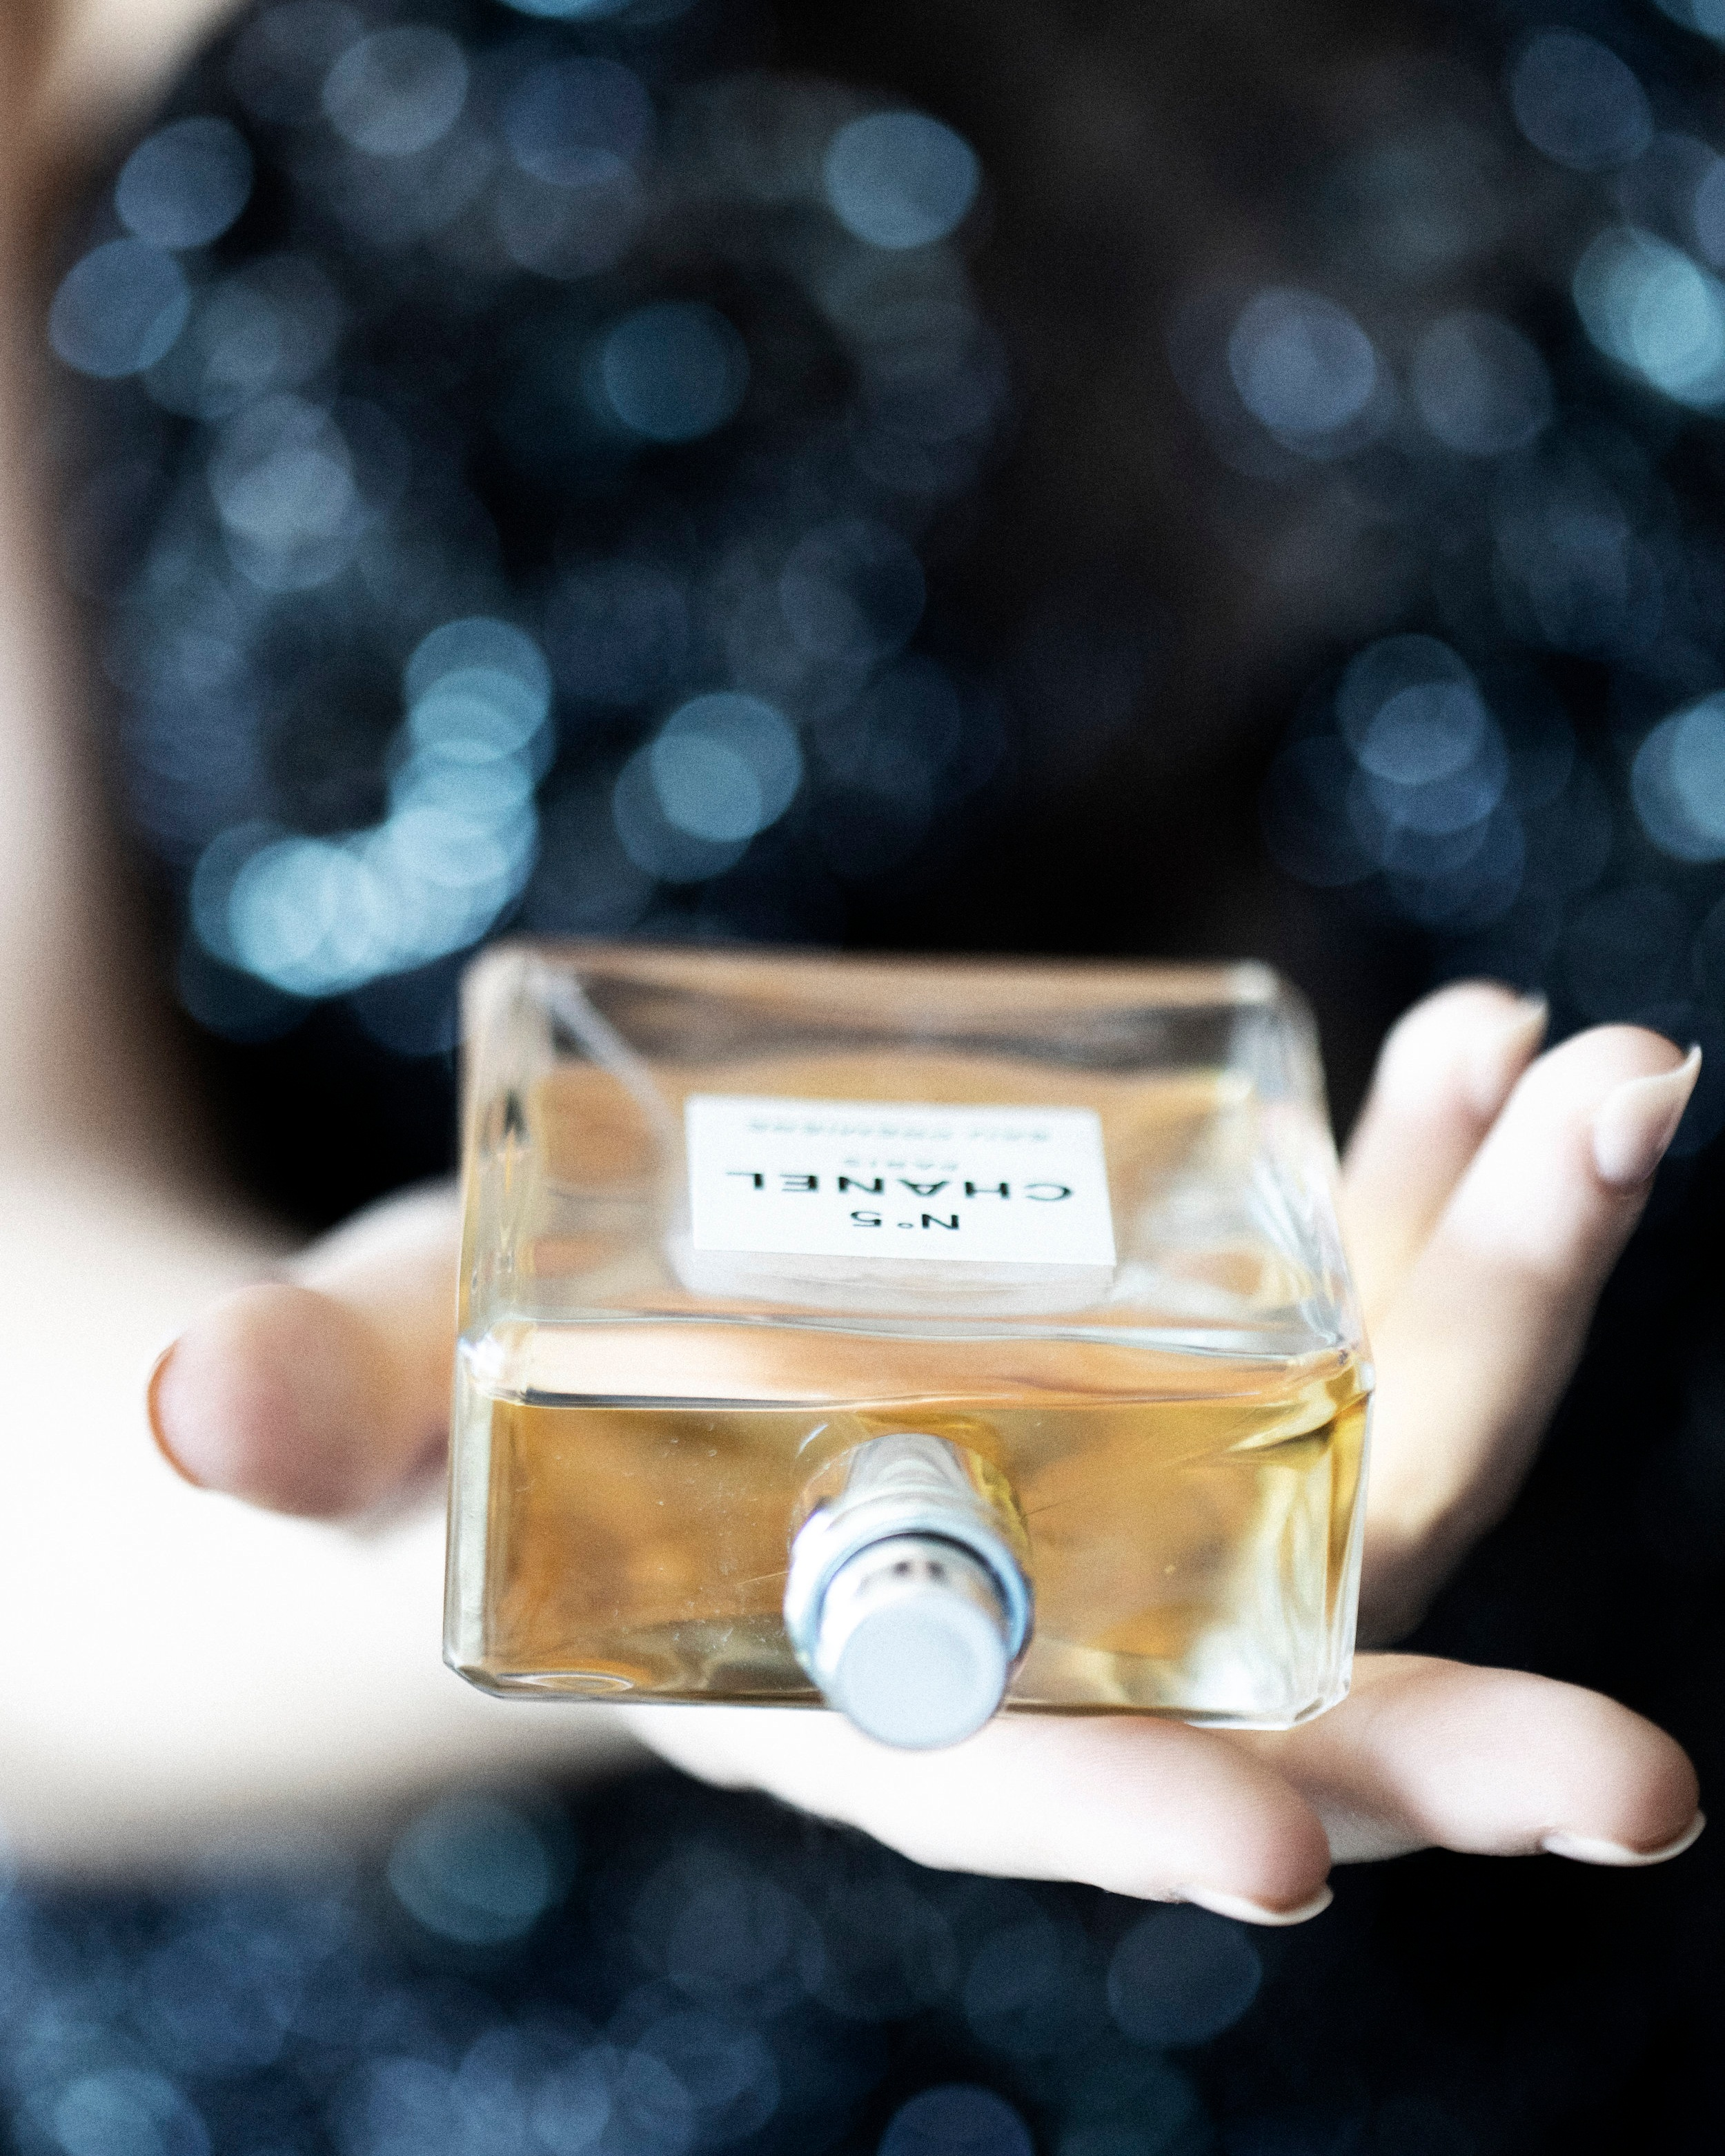 The essence of Perfume - Passed down to generations…